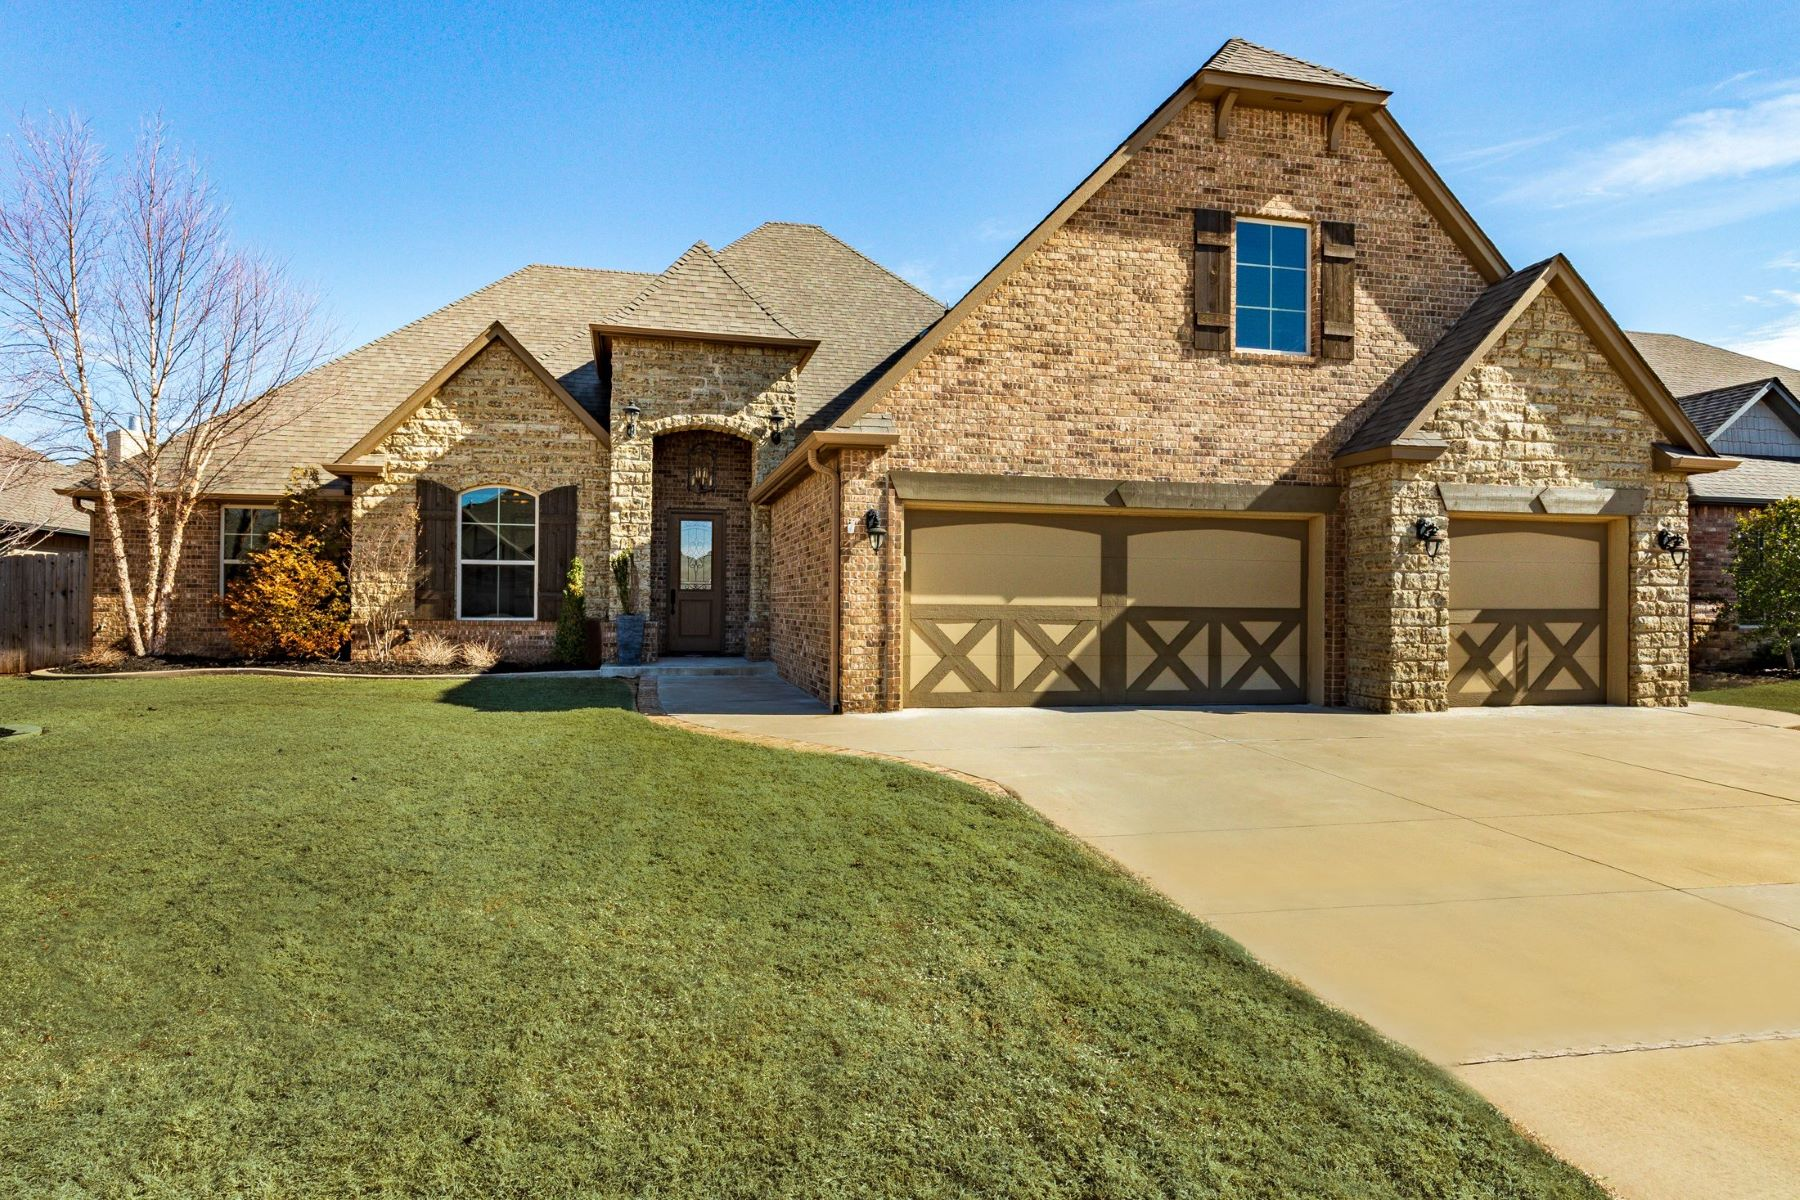 Single Family Homes for Sale at 17416 Locust Grove Lane, Edmond, Ok, 73012 17416 Locust Grove Lane Edmond, Oklahoma 73012 United States